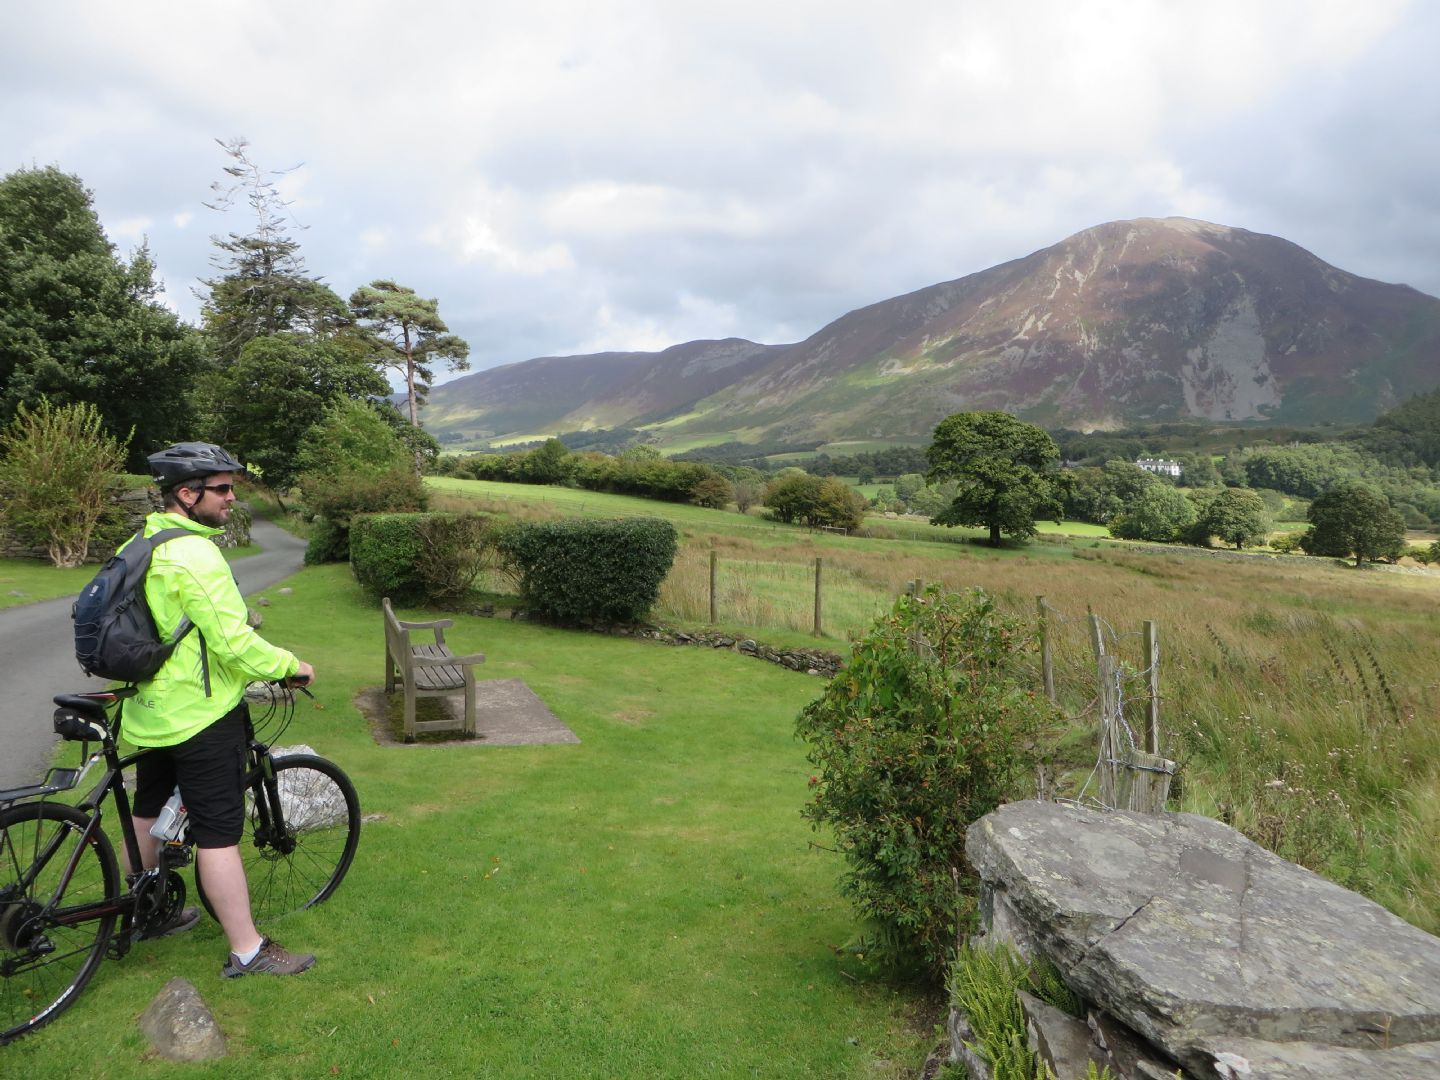 _Customer.47248.18344.jpg - UK - C2C - Coast to Coast 3 Days Cycling - Self-Guided Leisure Cycling Holiday - Leisure Cycling